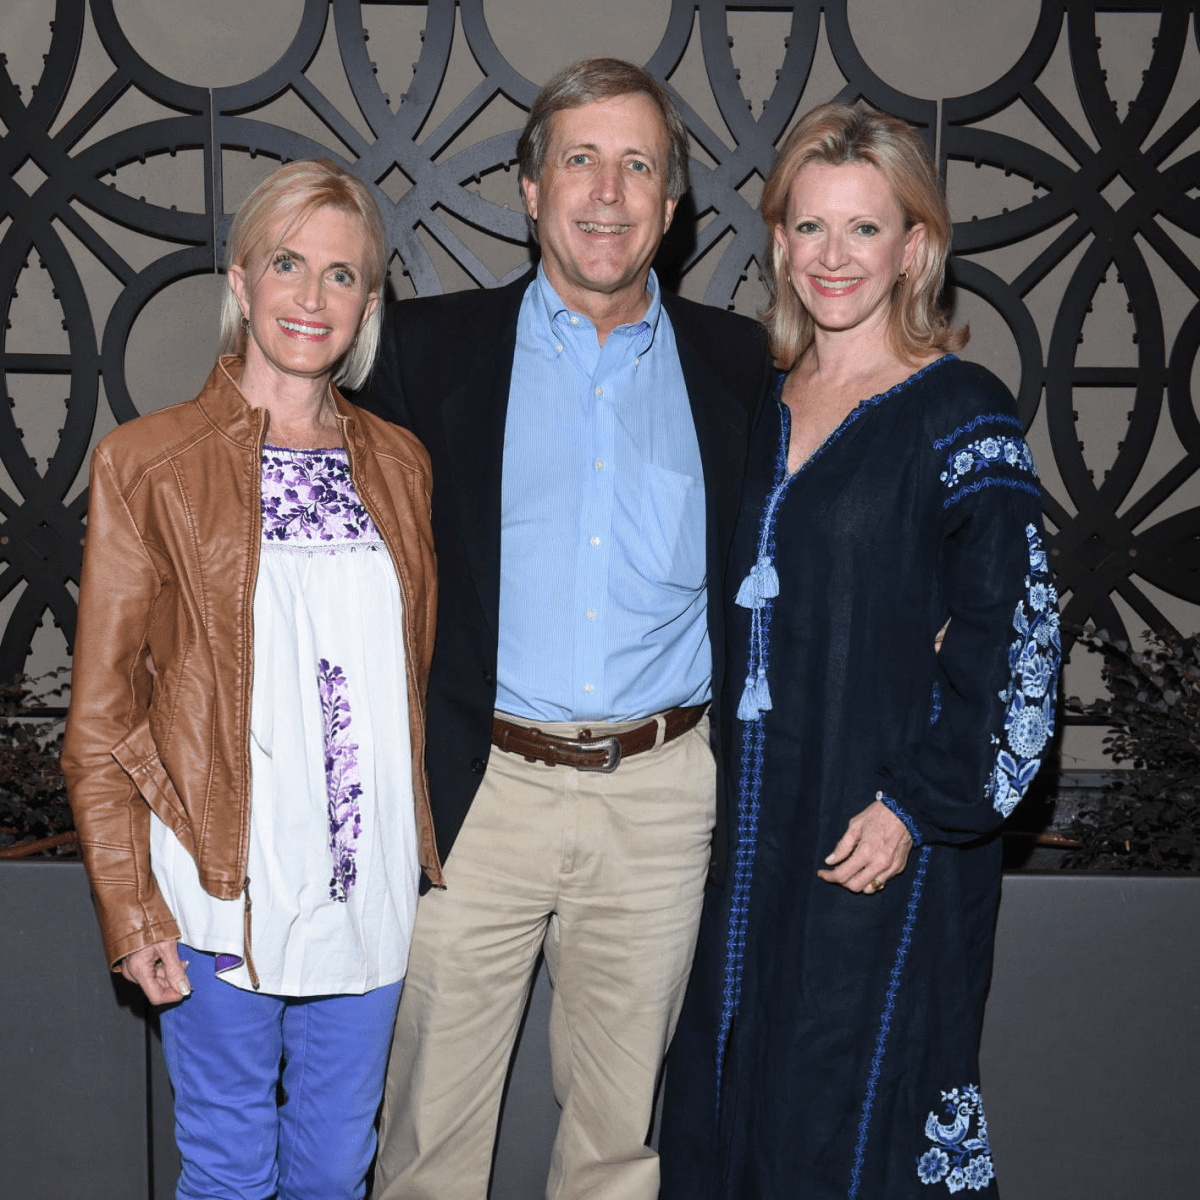 Fay Sheehan, Bragg Smith III, Ann Barbier-Mueller